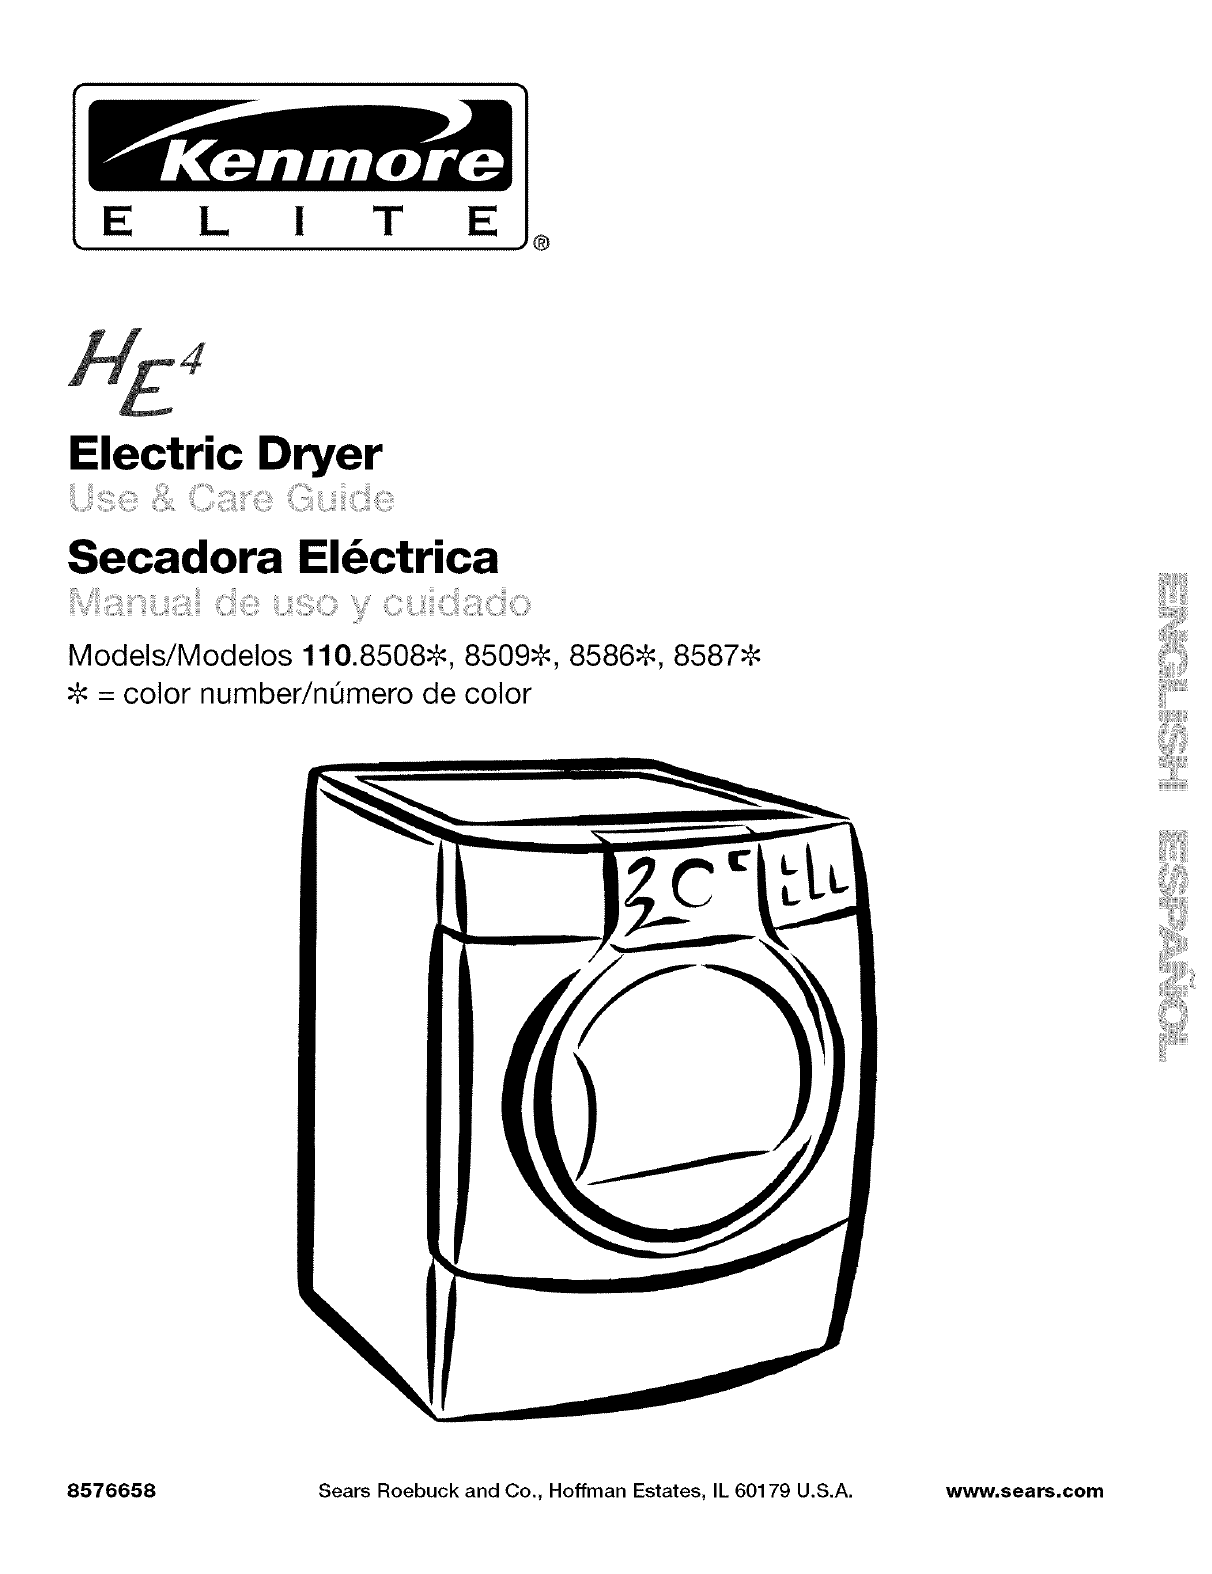 Kenmore clothes dryer 110 8508 user guide manualsonline